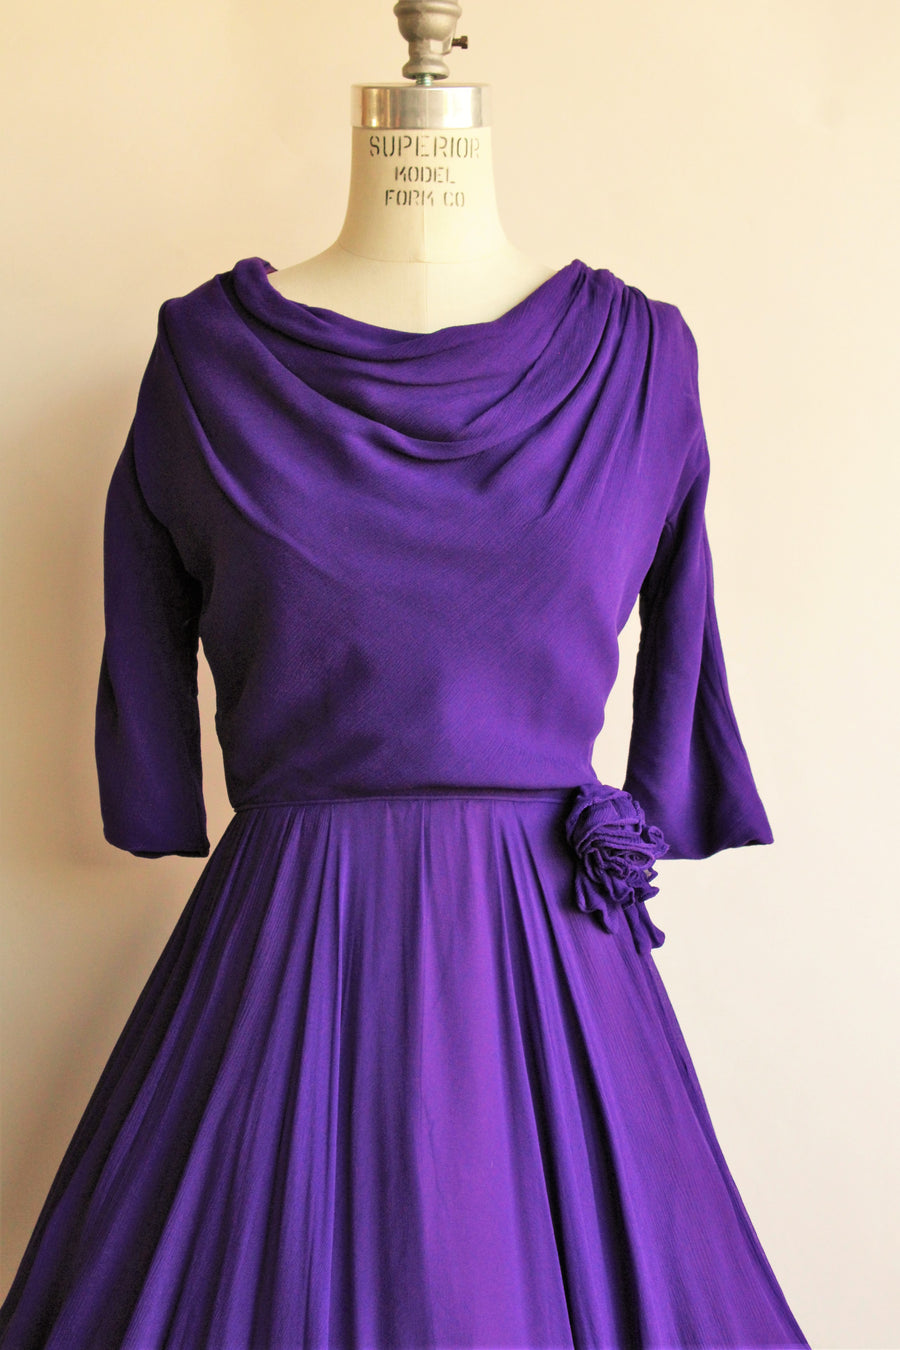 Vintage 1960s Purple Chiffon Fit And Flare Party Dress by Miss Elliette